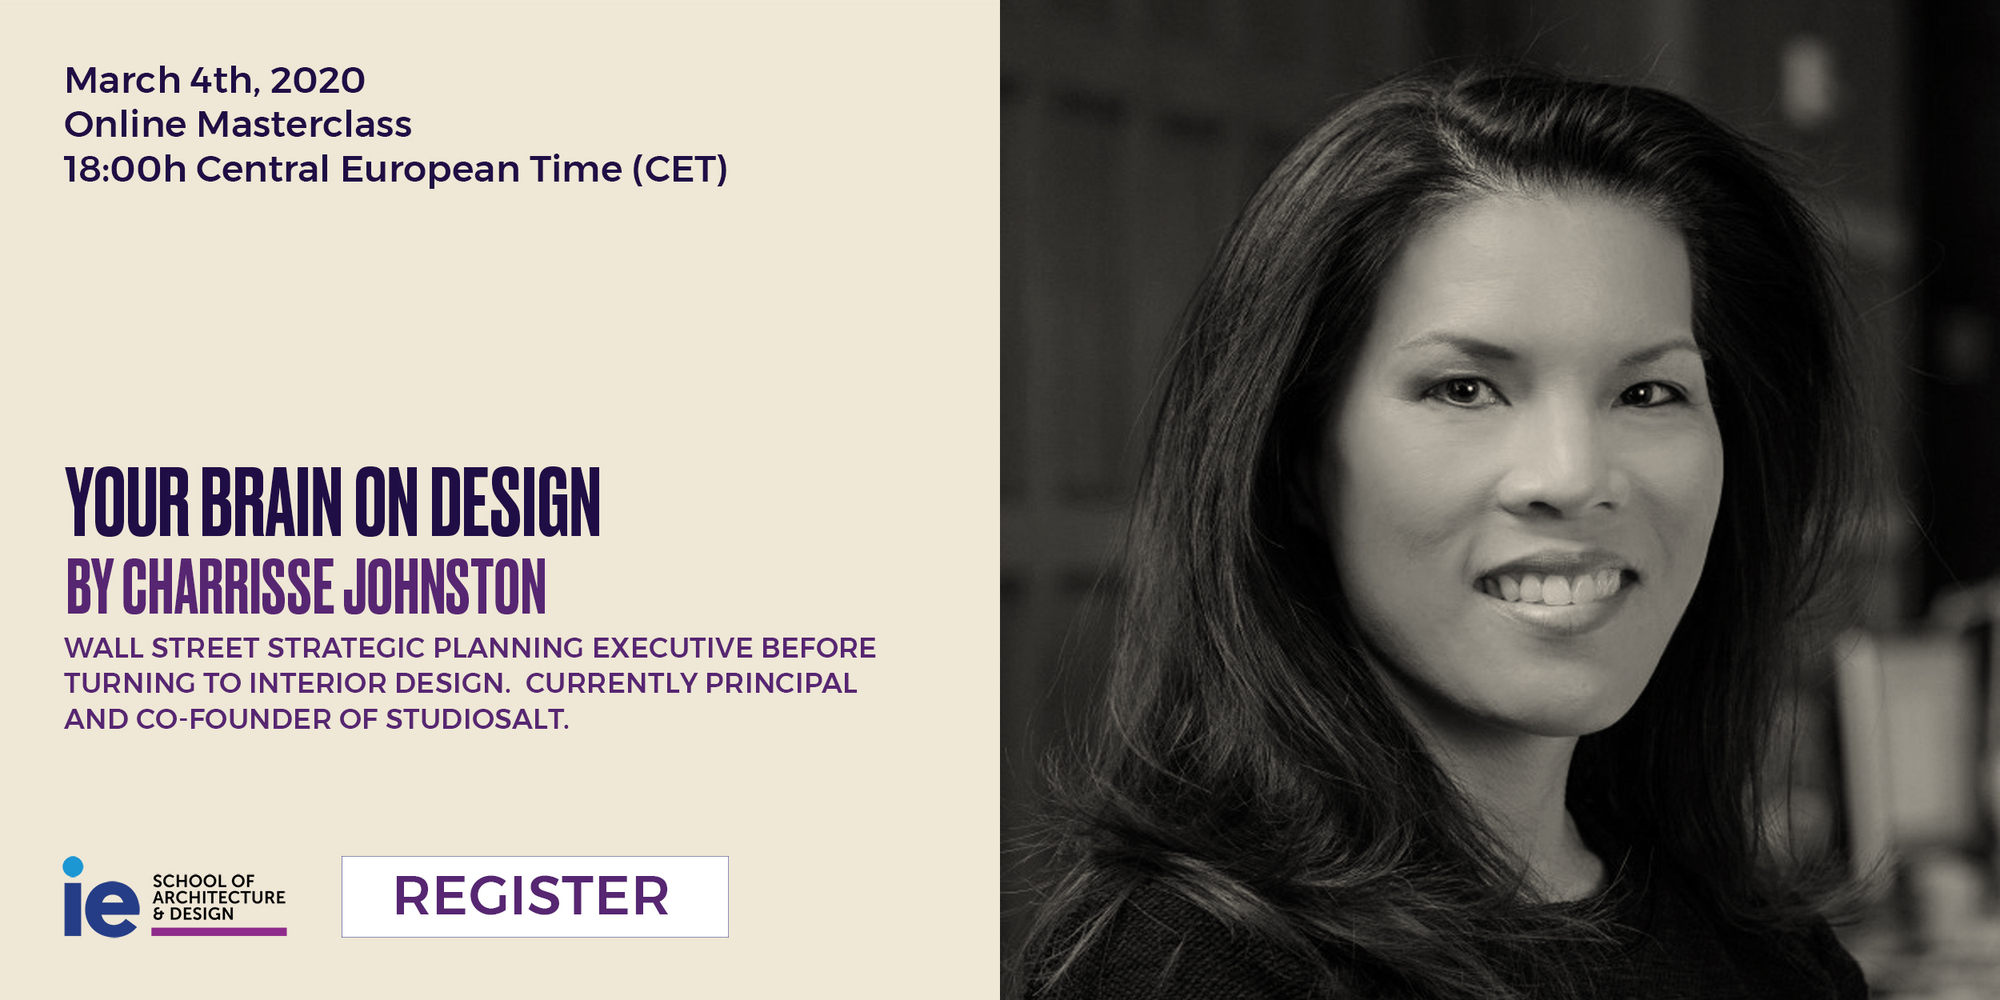 Online Masterclass Your Brain On Design The Relationship Between Neuroscience Design And Our Wellbeing Archdaily